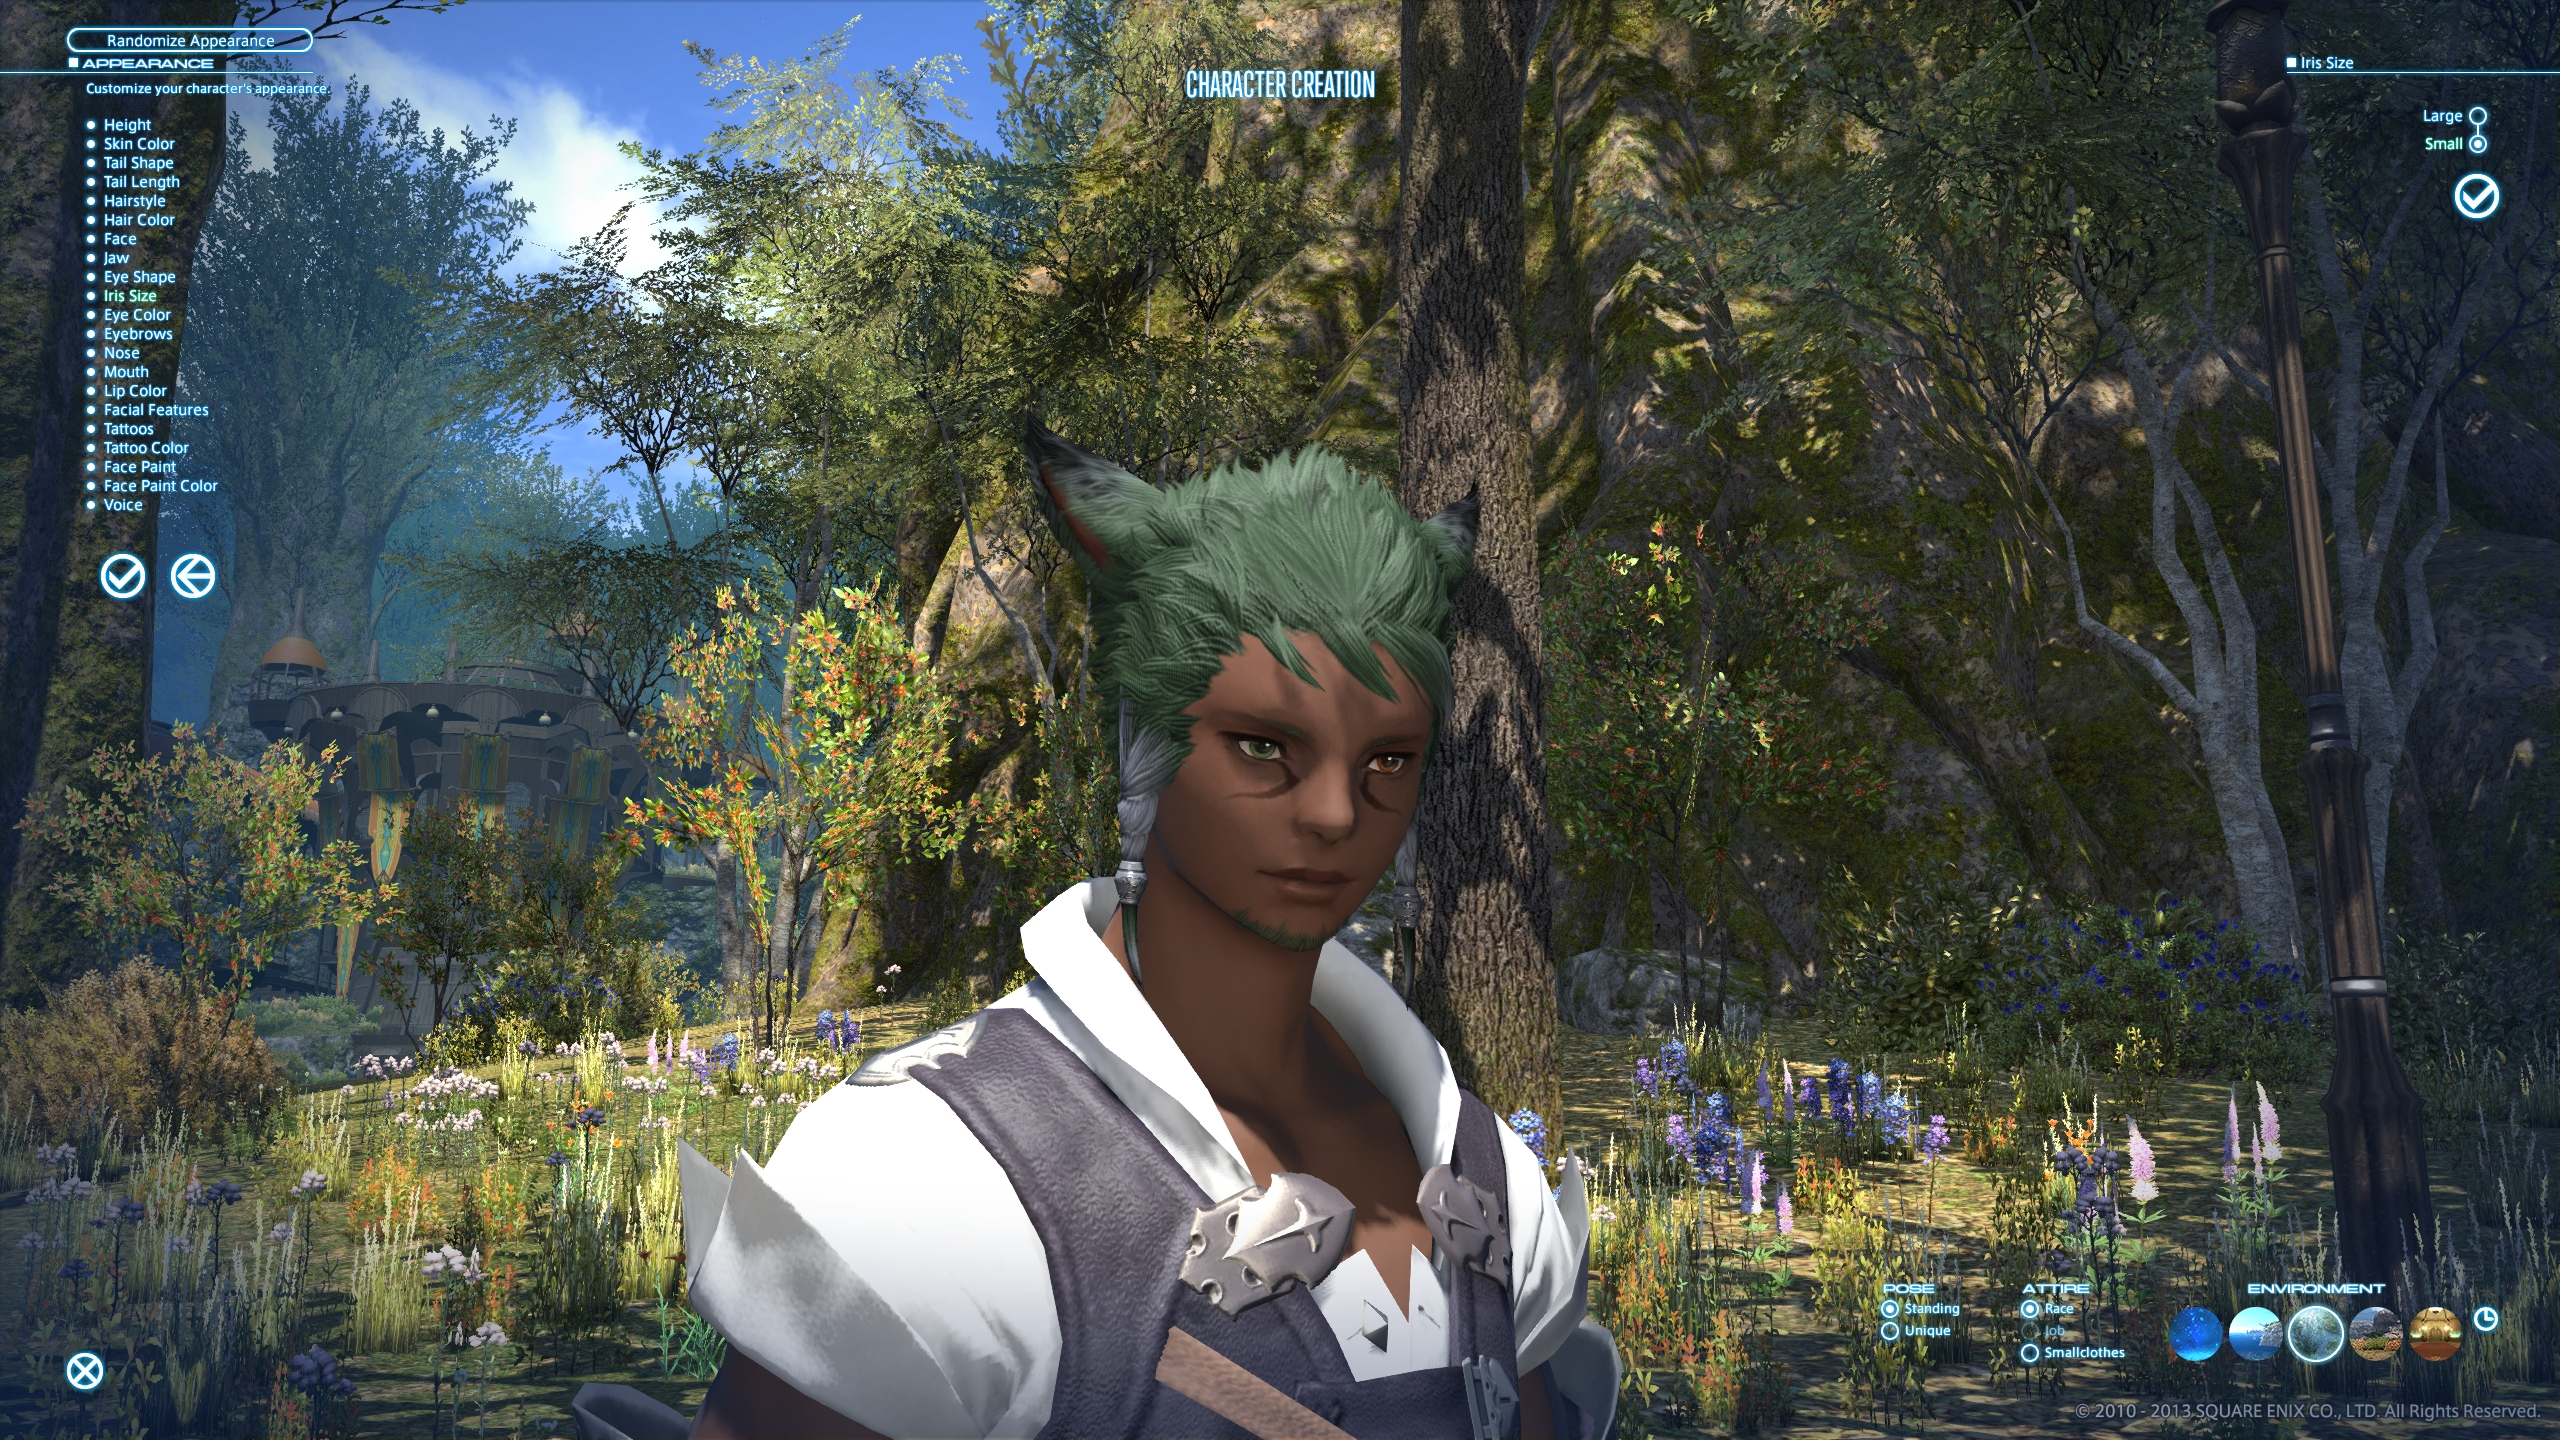 adajer ffxiv this hair ffxi character like color what green more help pinkish look akin cause laughing stop cannot eyesmouth expression website official best here found also actually match recreating grown accustomed quite personally pictures your benchmark going heres style just char post slightly darker edit2 pinkredish